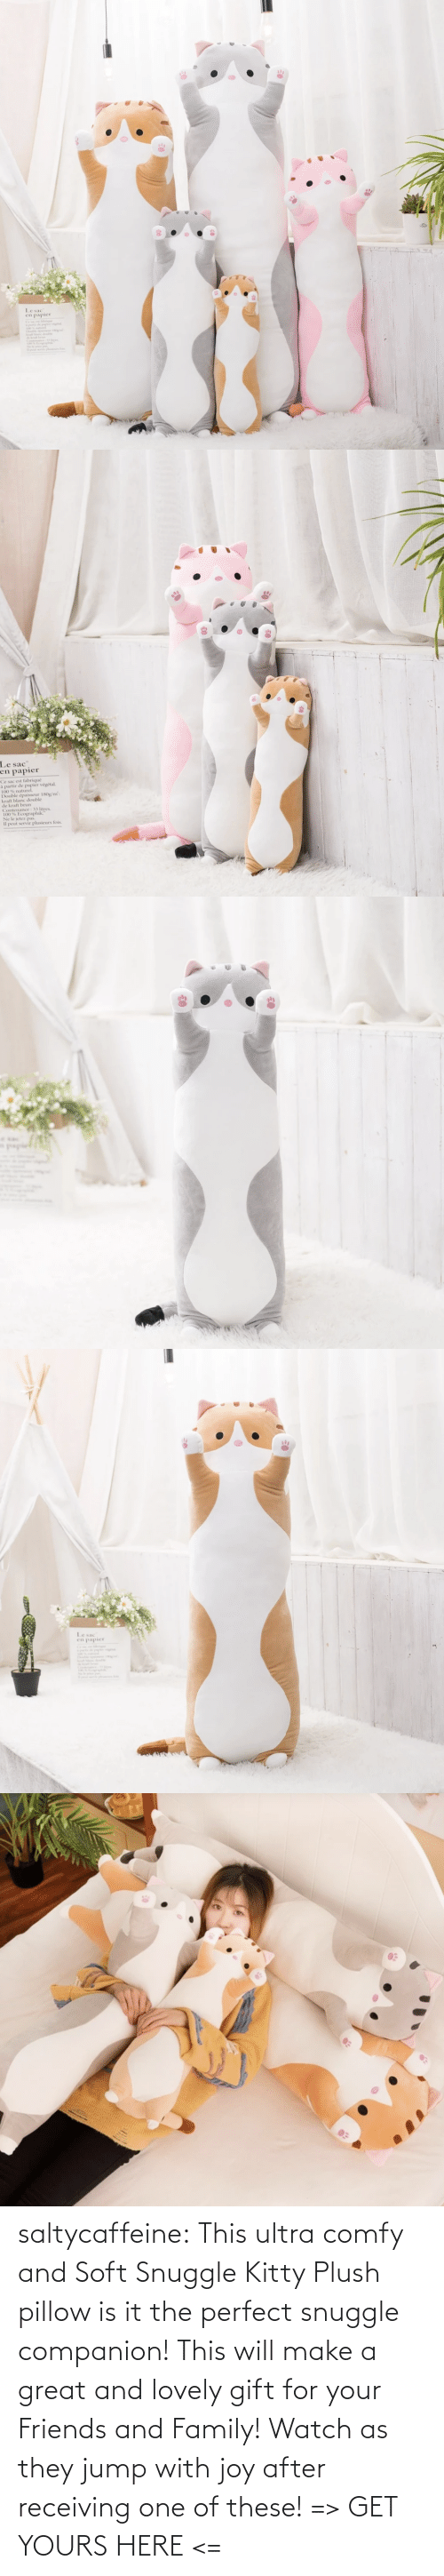 comfy: saltycaffeine: This ultra comfy and Soft Snuggle Kitty Plush pillow is it the perfect snuggle companion! This will make a great and lovely gift for your Friends and Family! Watch as they jump with joy after receiving one of these! => GET YOURS HERE <=